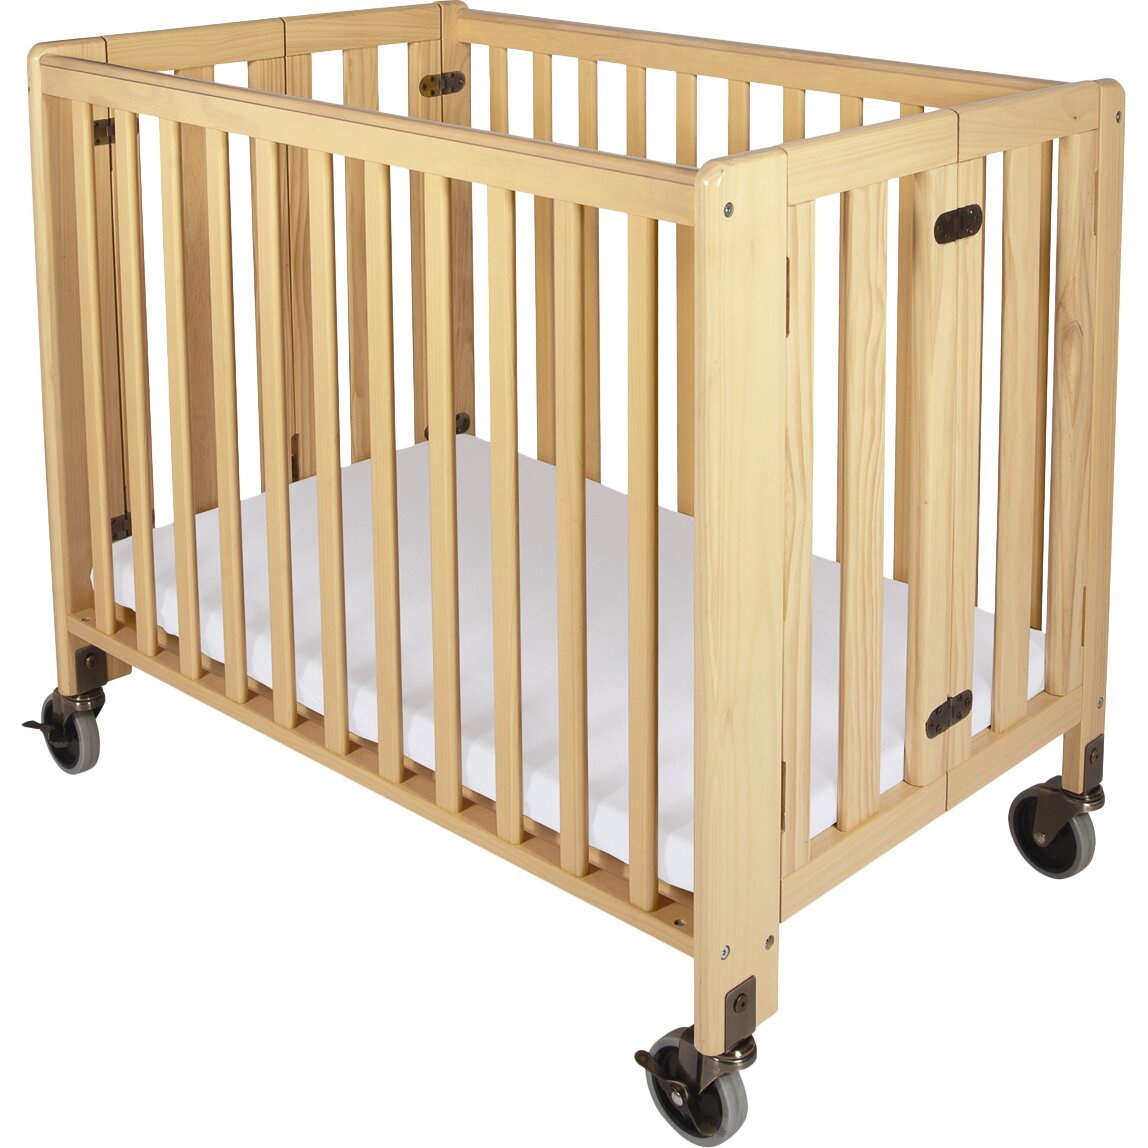 Baby cribs for daycare centers - Foundations Hideaway Storable Wood Convertible Crib With Mattress